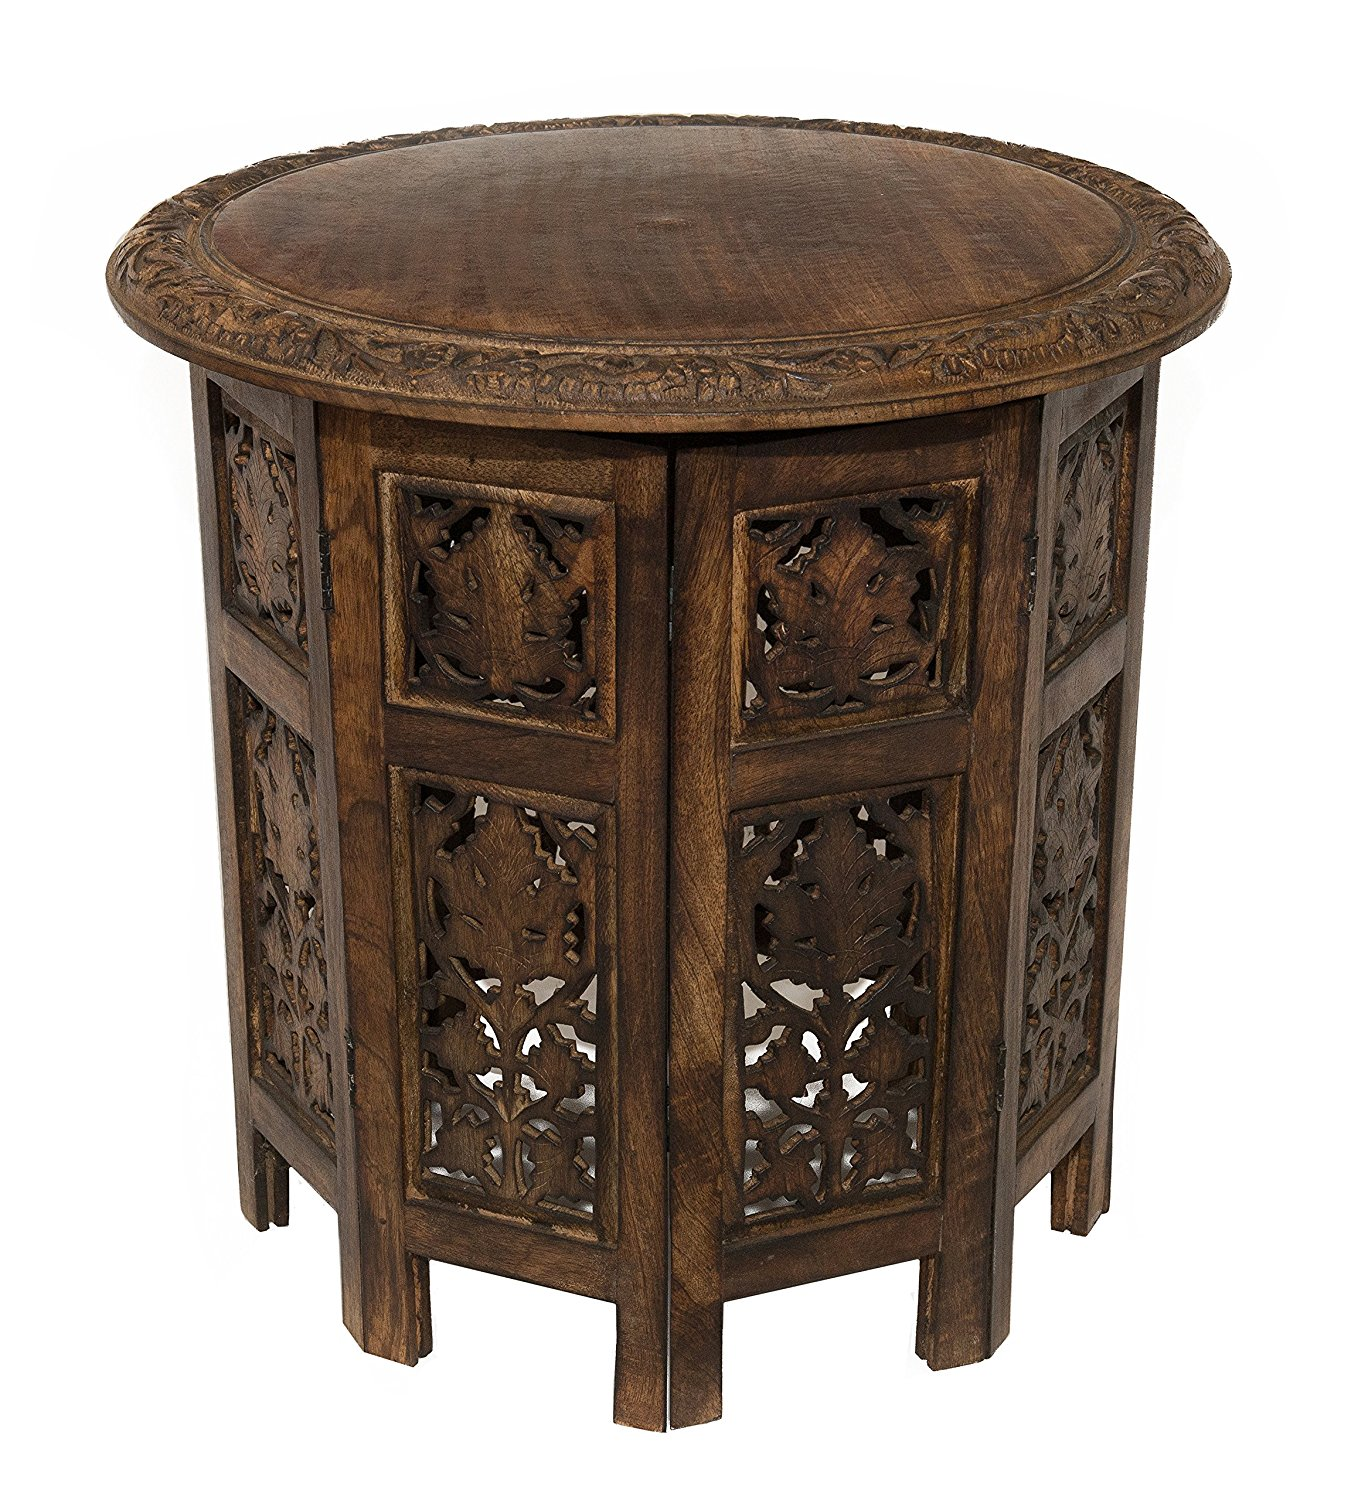 lovely small accent table for ornate brown round wooden electric wall clock metal chairside black pipe wood and glass coffee designs ethan allen side wicker outdoor setting